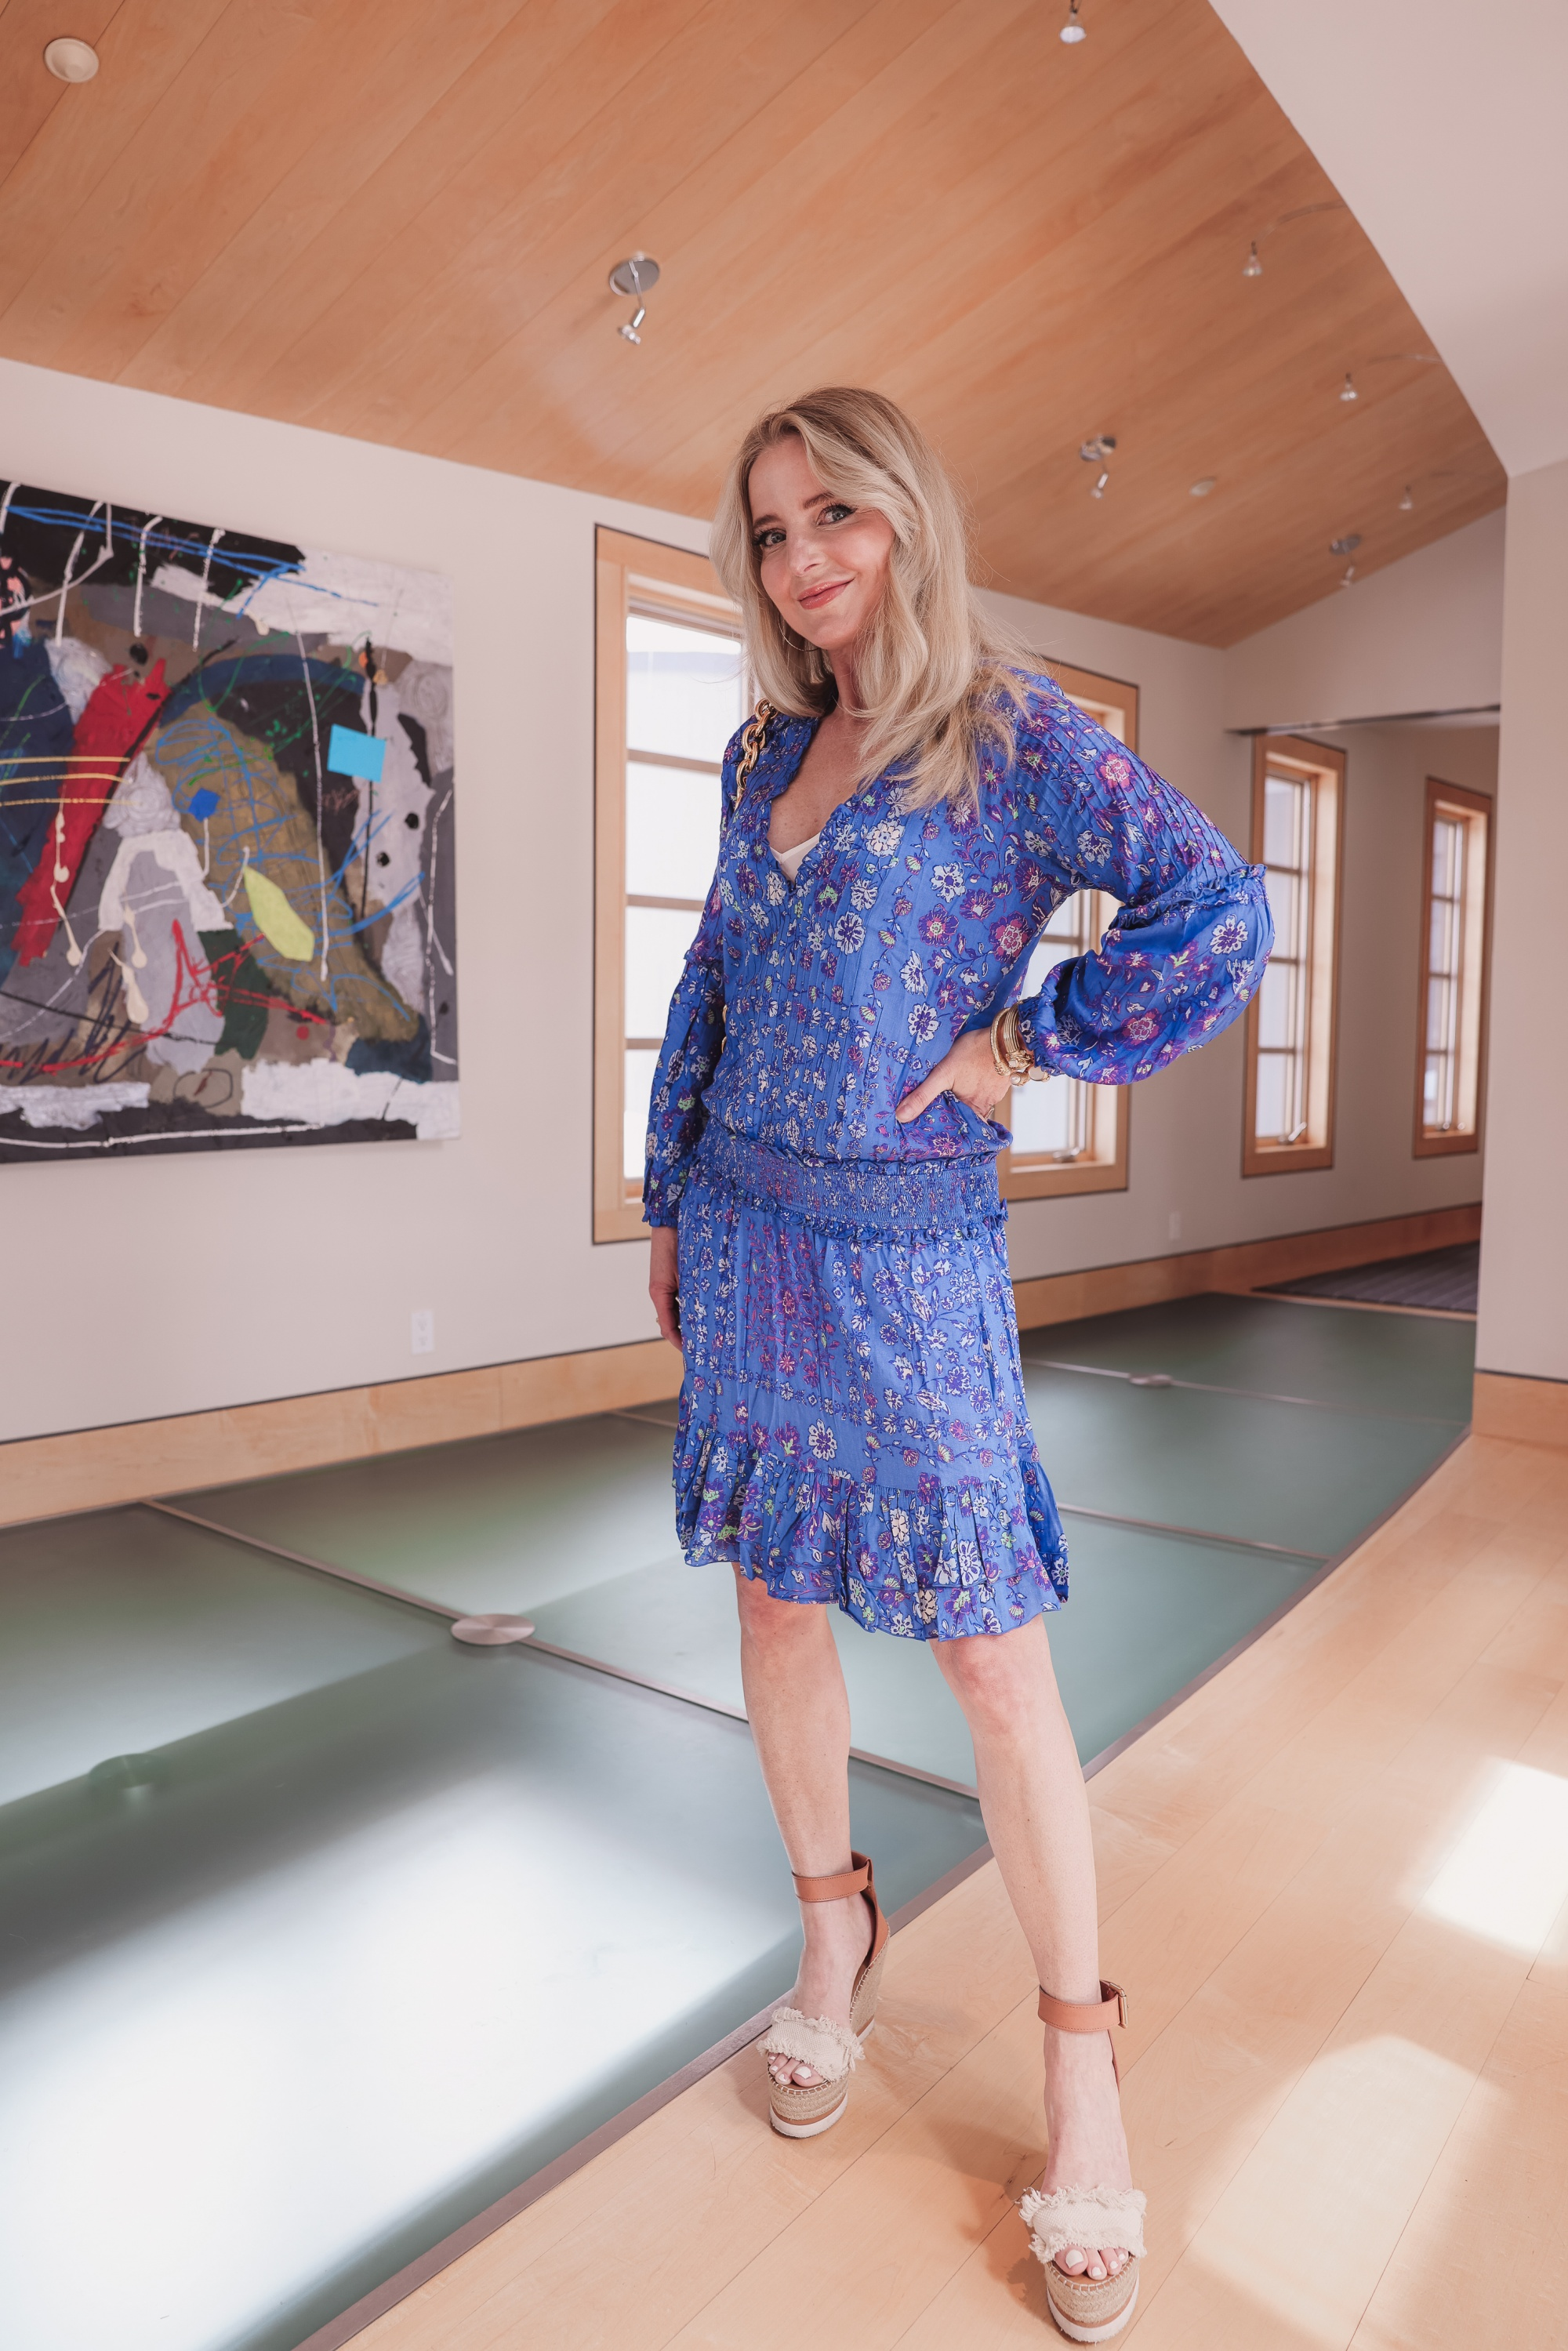 what to wear to a spring wedding, blue floal dress, blue mini dress, spring wedding guest dress, wedding guest, wedding guest dress, what to wear to a wedding as a guest, how to dress for a wedding, how to dress for a spring wedding